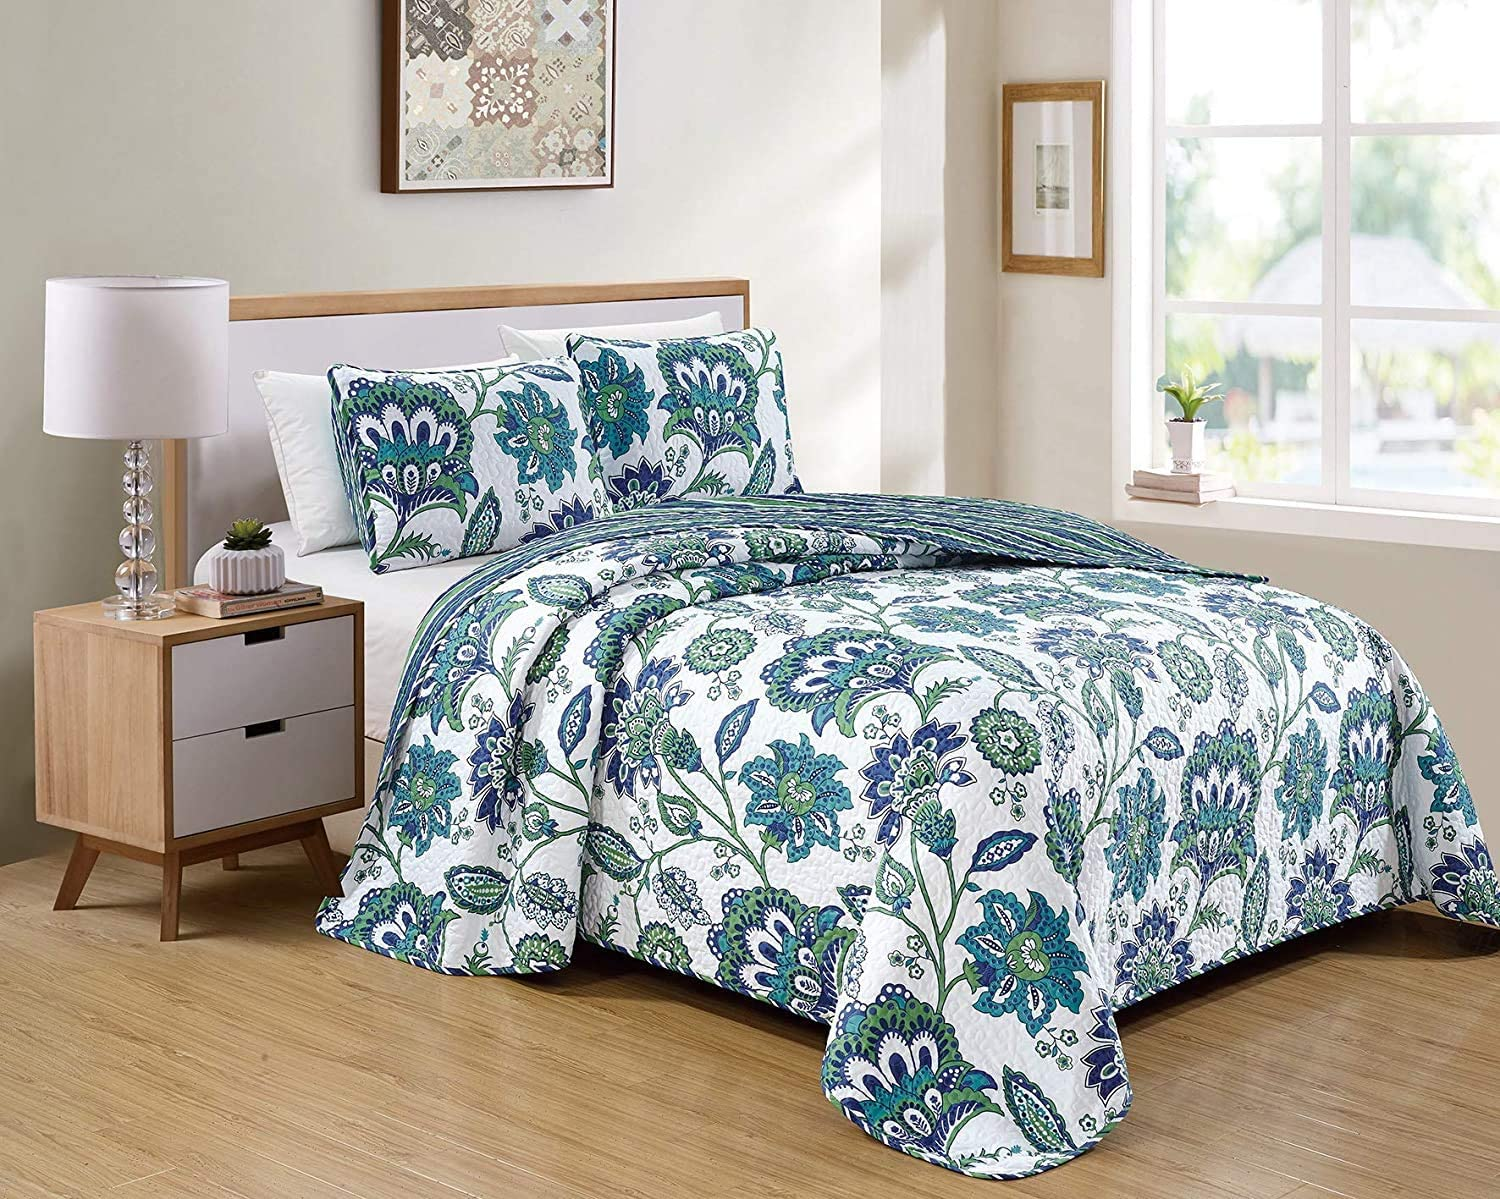 Smart Linen Bedspread 価格交渉OK送料無料 Set Quilt Pattern Country Manor Floral 正規品スーパーSALE×店内全品キャンペーン Tur